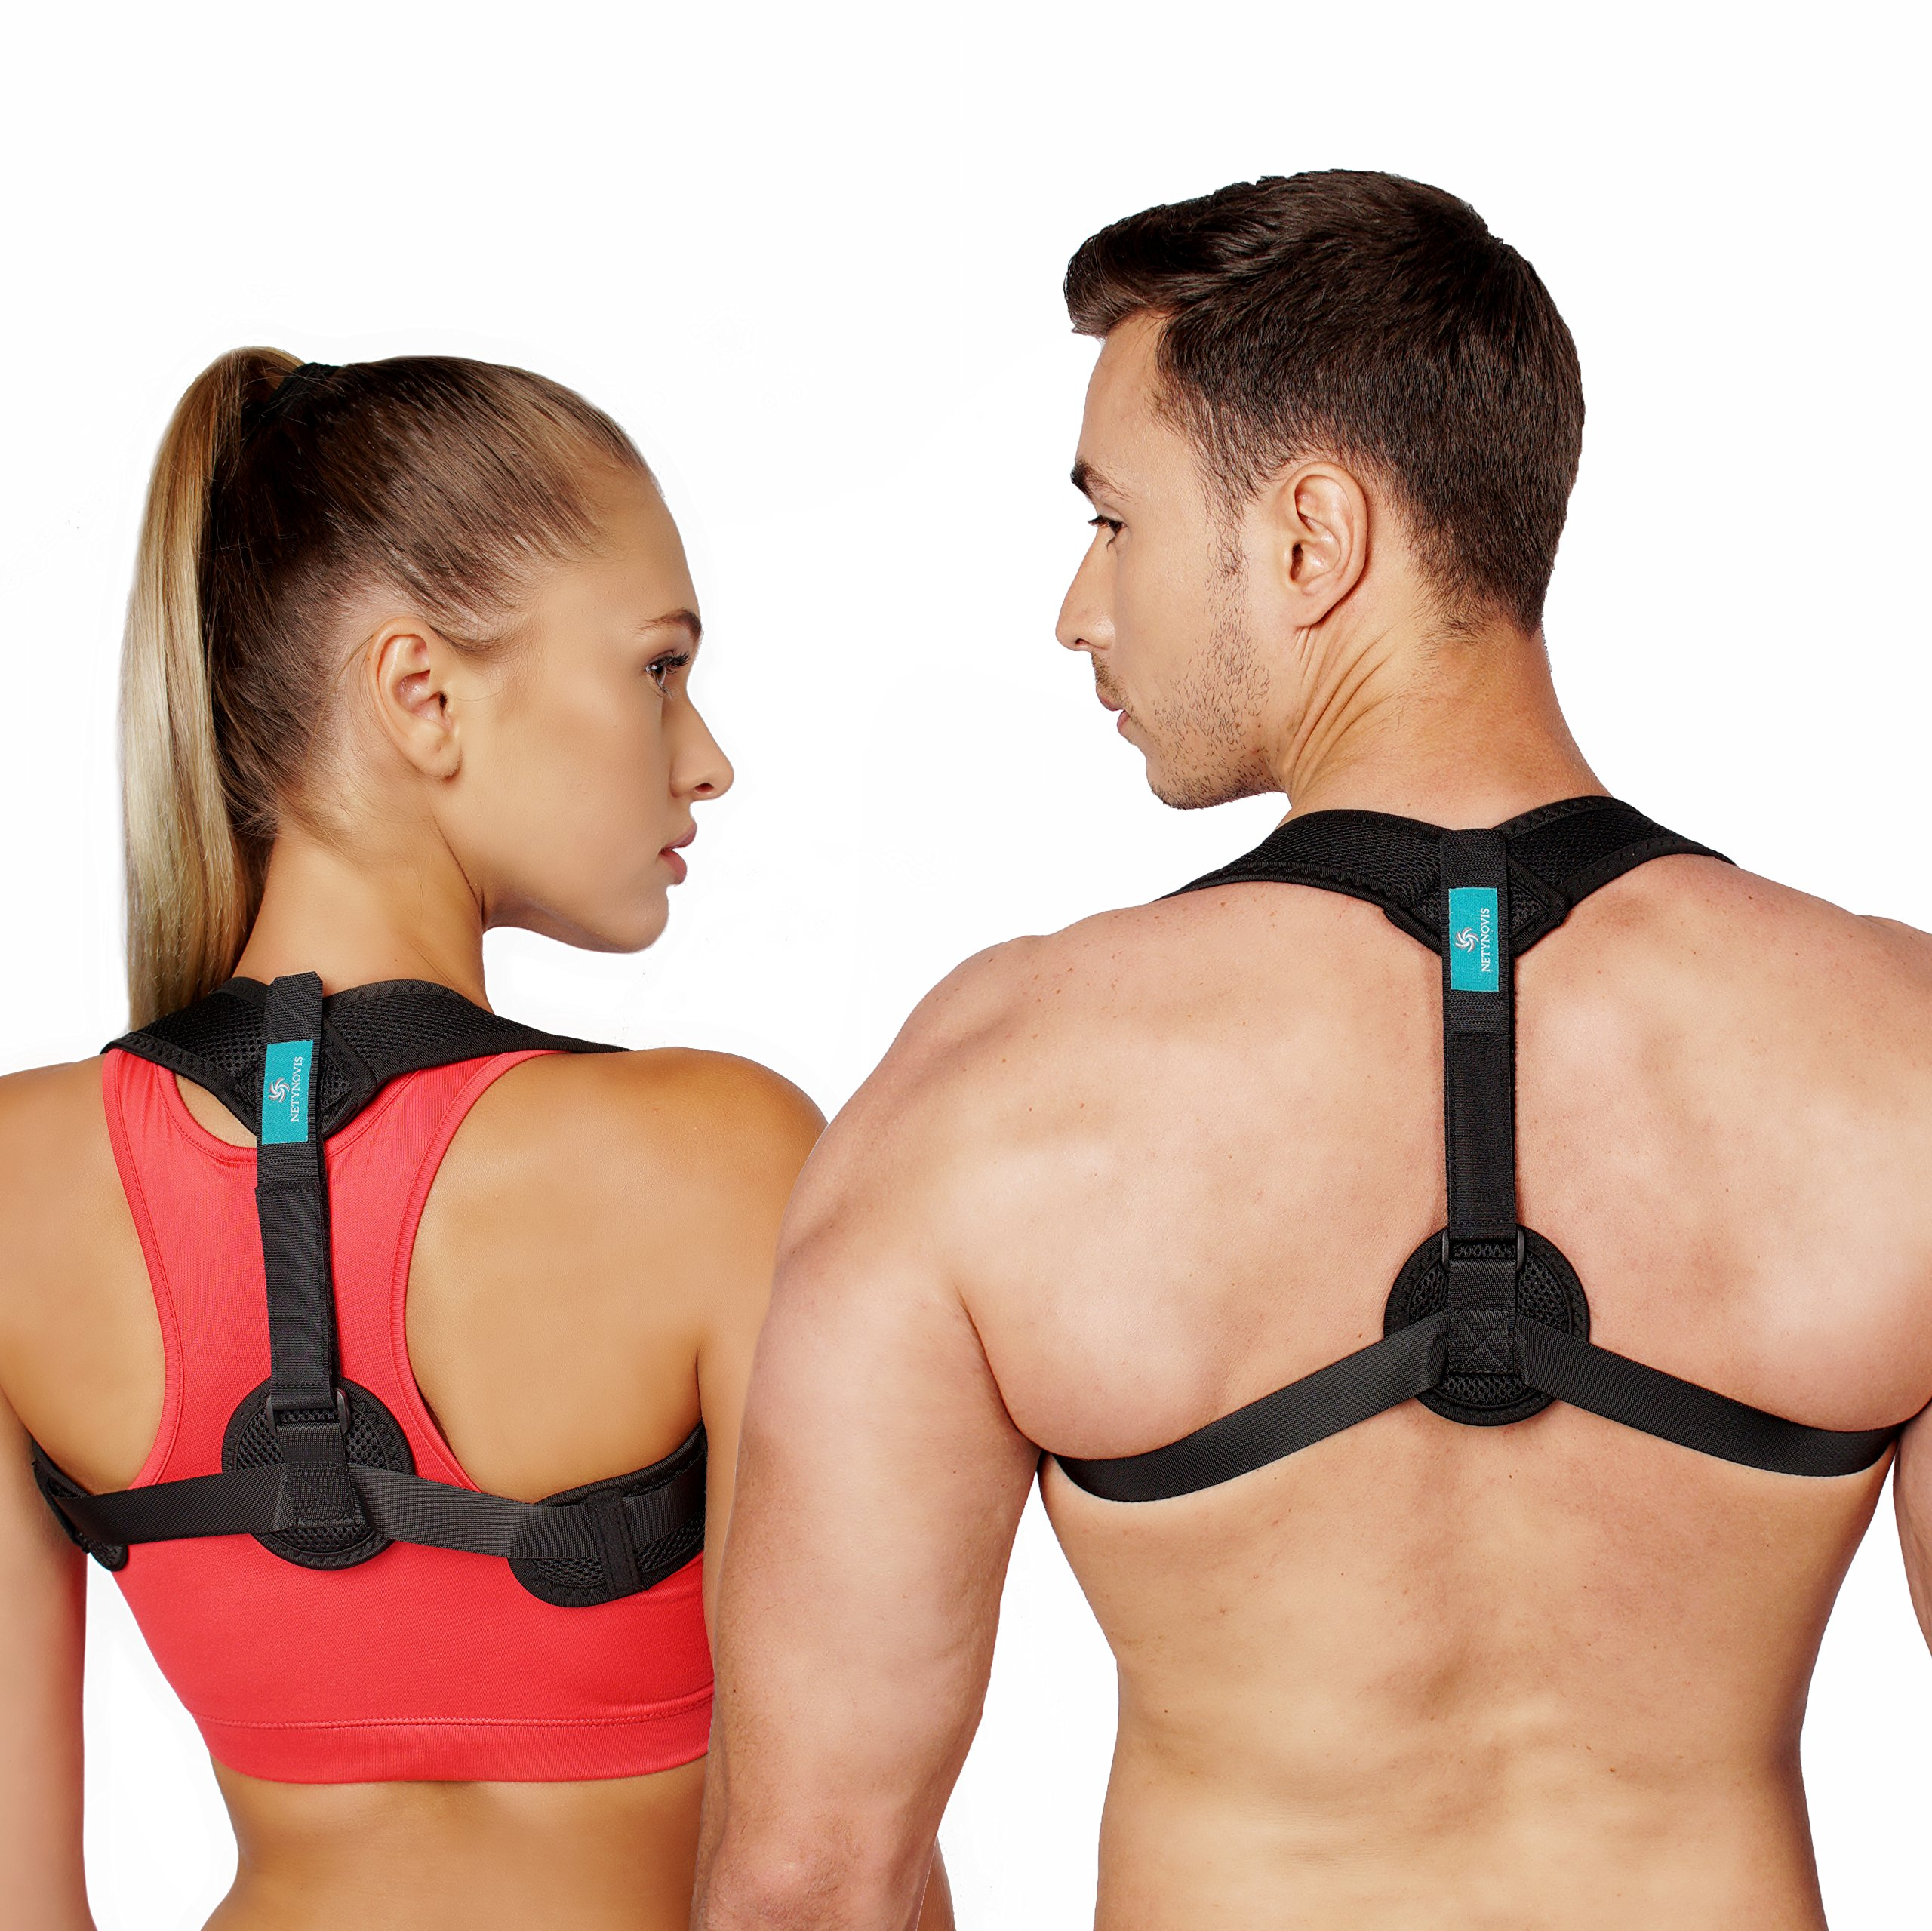 Posture Corrector for Women Men and Kids – Extra Comfortable Adjustable Upper Back Support Brace – Universal Size & Improved Design Back Straightener – Clavicle Support